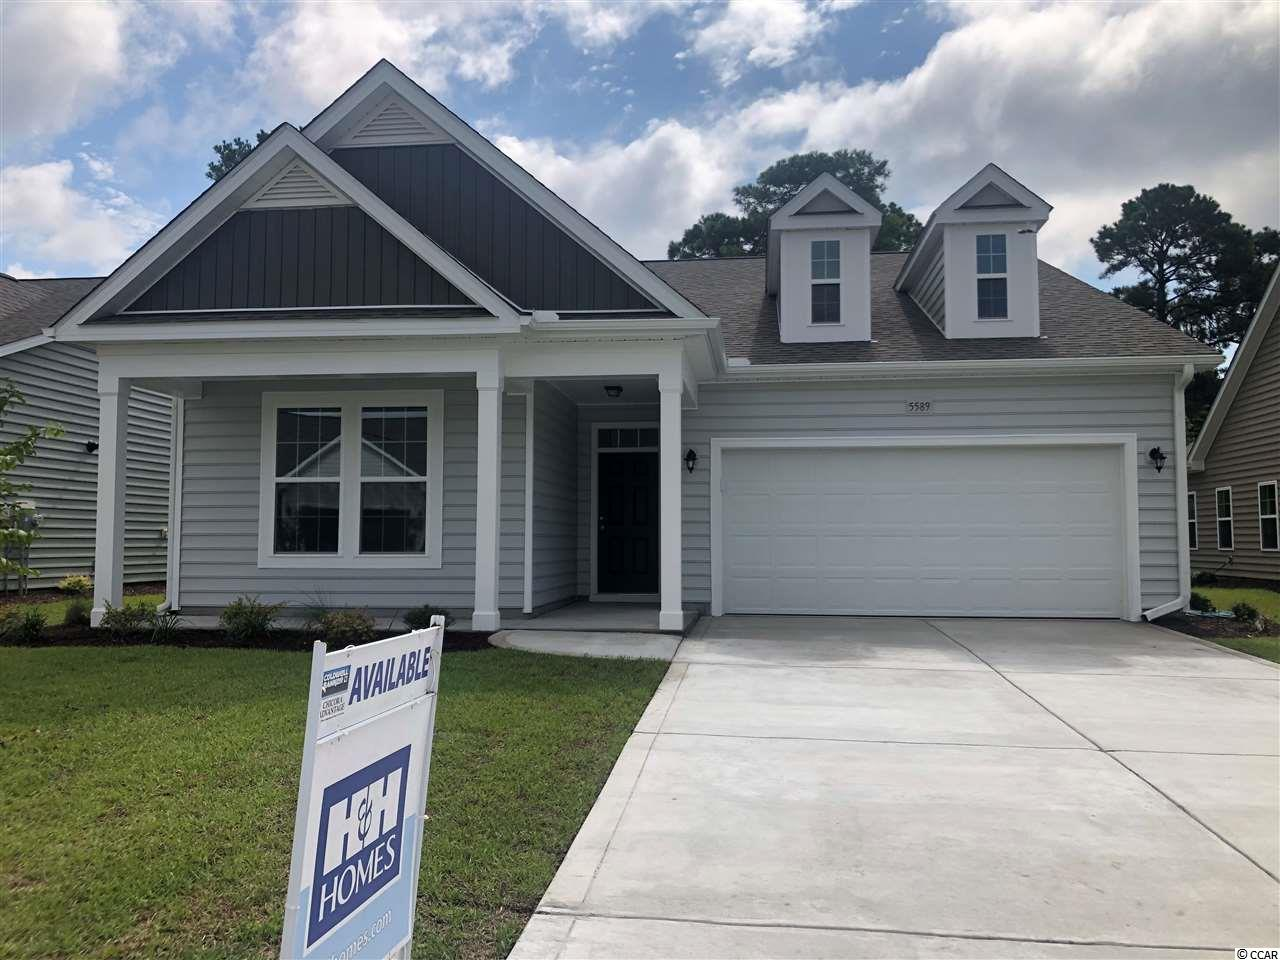 **HUGE PRICE REDUCTION** PLUS CRAZY 8 INCENTIVE FOR LIMITED NUMBER OF INVENTORY CONTRACTS ACT FAST!  ASK AGENT FOR DETAILS! This brand new Belair Inventory Home will be finished SOON.  It is beautifully laid out as a 3bed 2bath.  Low Country style home with large covered front porch.  This home backs to protected preserves for extra privacy also placed in the back cul-de-sac of the community.  Come in through the large open foyer and with bedroom, guest bathroom & bedroom.  Walk further into your open Mudroom area which is located right off the Garage entry and spacious enclosed Laundry Room.  The open Kitchen has large Island Bar with overhang for seating with an enormous Walk-in Pantry.  Off the kitchen is the Casual Dining Room. Large Master Bedroom sits at the back of the home with Private on-suite bath that offers Huge Walk-in Closet & large walk-in shower with glass door enclosure.  All of this plus a nice size Rear Covered Porch offering privacy directly in the middle of home.  This home literally has it all!!  Kitchen will boast Ivory Painted Cabinets with crown molding, Recessed Can Lighting & gorgeous granite countertops.  Wood look Laminate flooring in all common areas, carpeting in bedrooms and Vinyl in wet areas including both bathrooms and laundry room.  The 2-car garage will have drywall and paint as well as garage door opener installed.  As a Brookberry resident you have full access to The Farms 2 resort-style pools, clubhouse, fitness center, basketball court, and a playground. All this plus access to the Atlantica beach club.